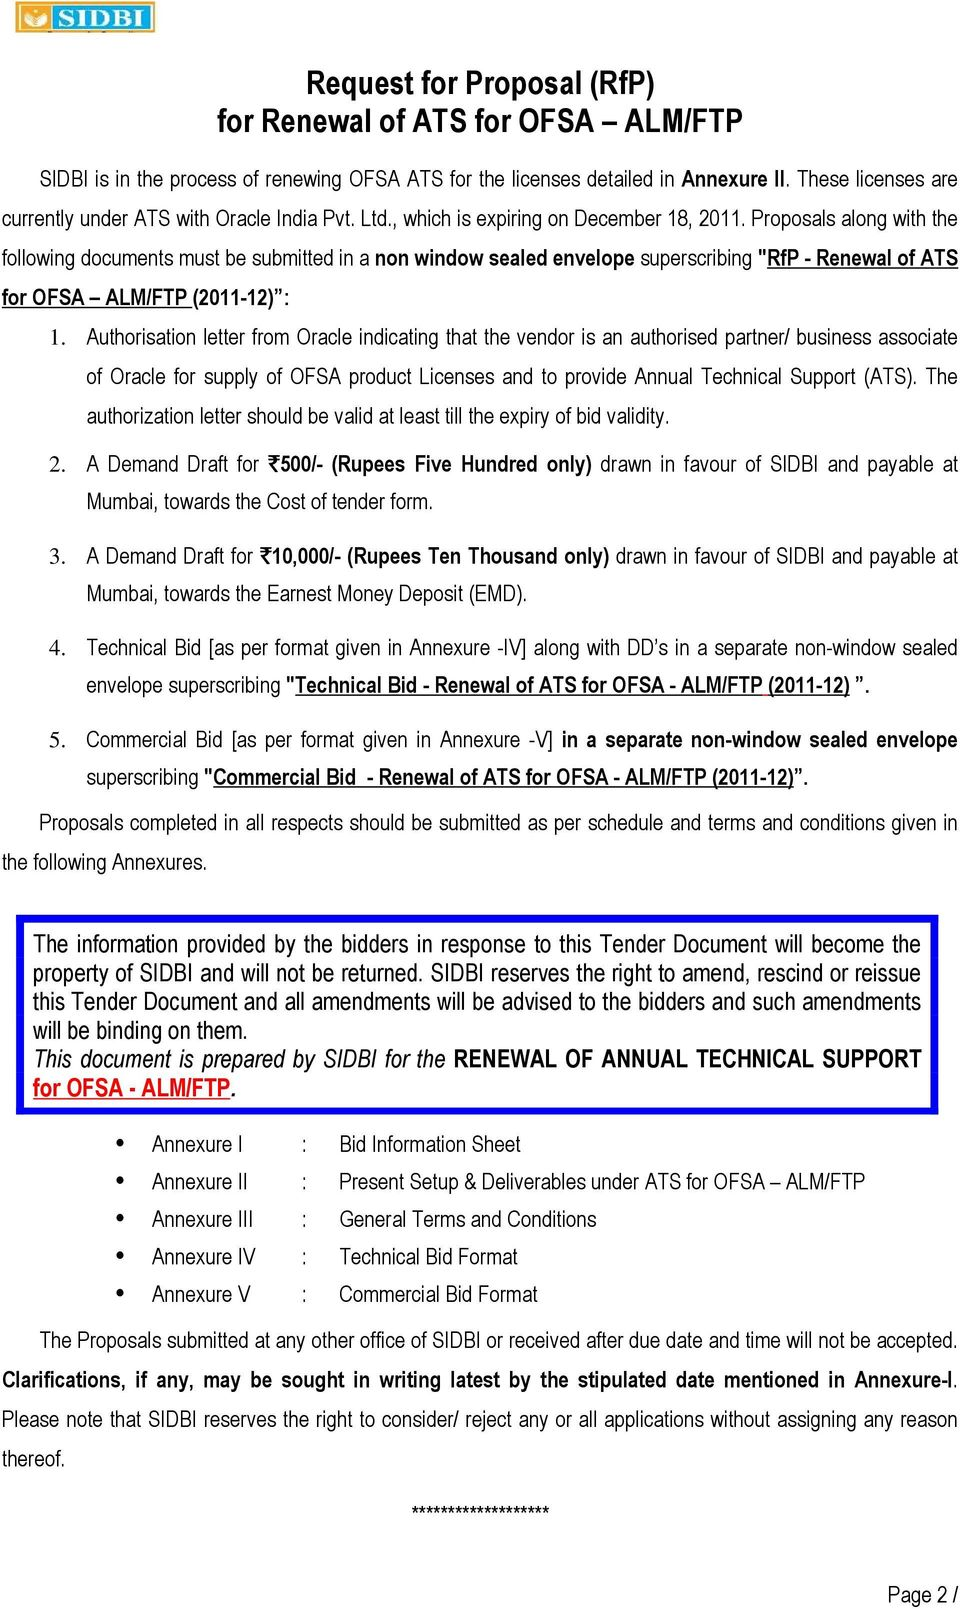 "Proposals along with the following documents must be submitted in a non window sealed envelope superscribing ""RfP - Renewal of ATS for OFSA ALM/FTP (2011-12) : 1."